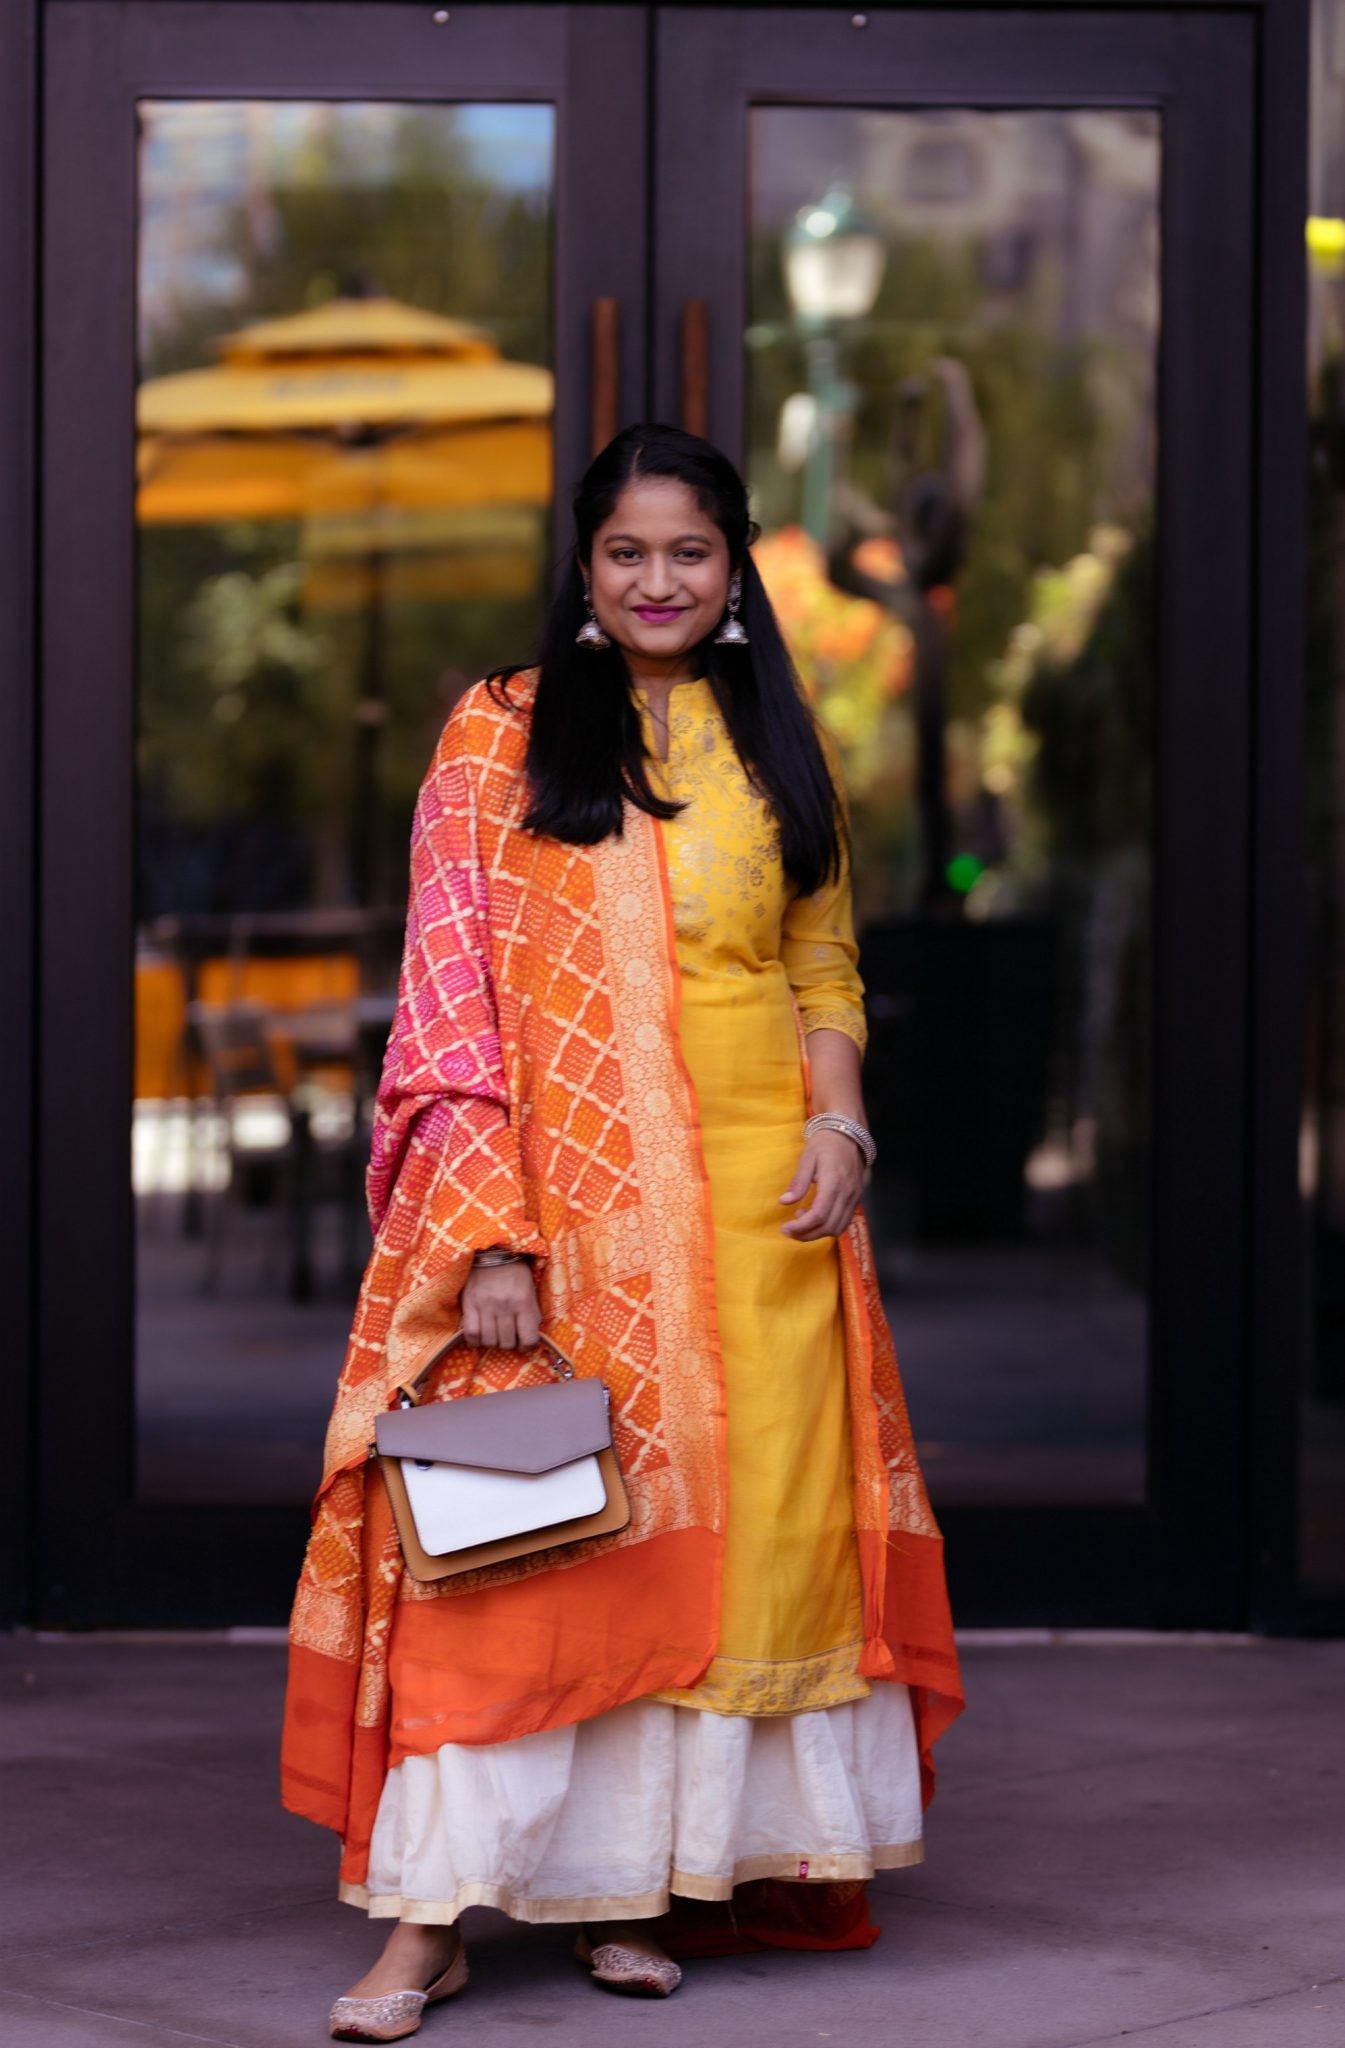 5 Cute Diwali Outfits to Wear for your Diwali Party, Diwali look book featured by top US modest fashion blog, Dreaming Loud: yellow kurtha, beige gold skirt,Bandhani dupatta, Botkier Cobble Hill Color-Block Crossbody, silver jhumkas 3